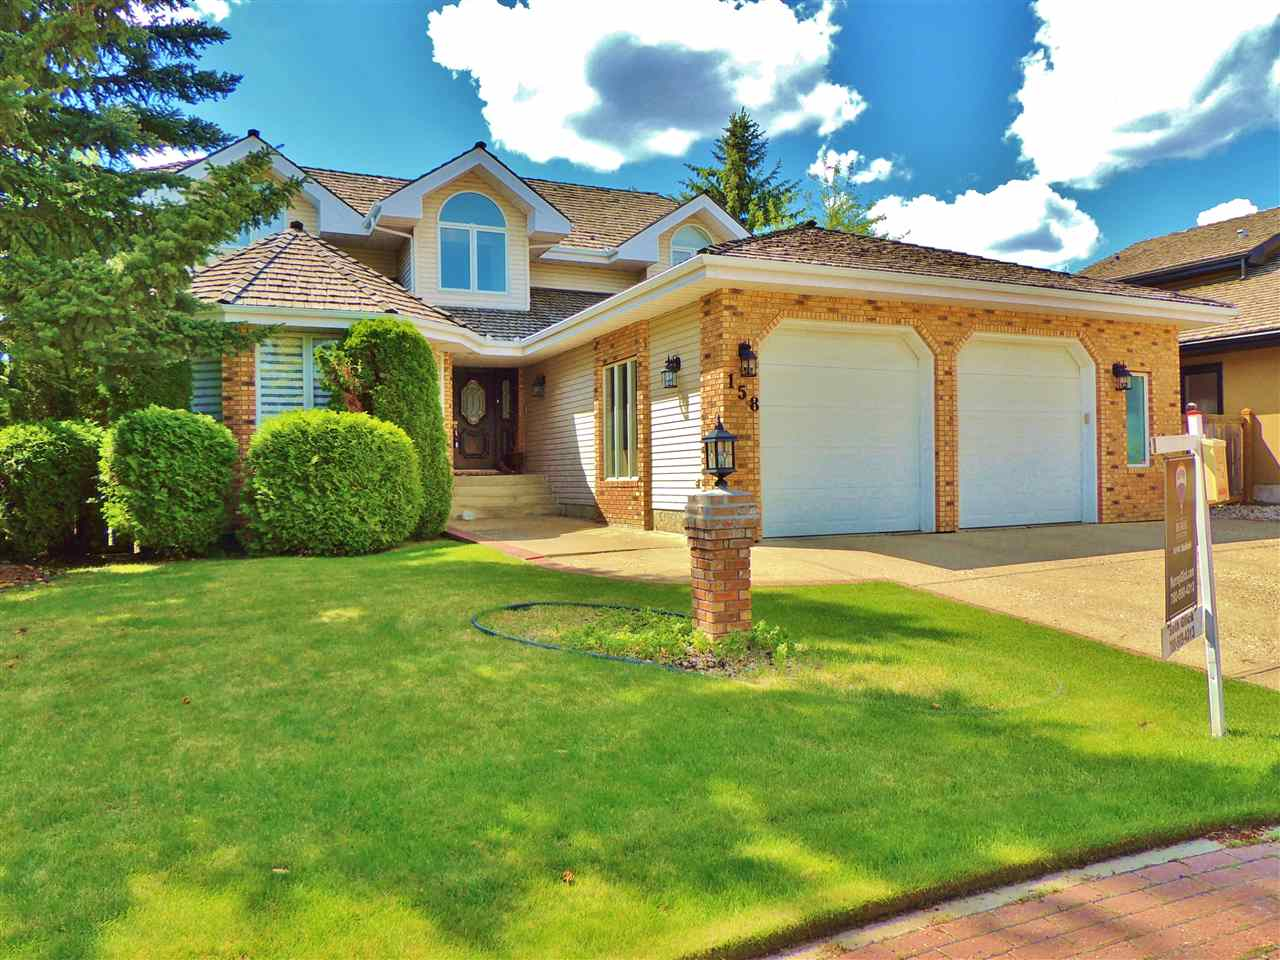 Main Photo: 158 WOLF RIDGE Place in Edmonton: Zone 22 House for sale : MLS® # E4082543